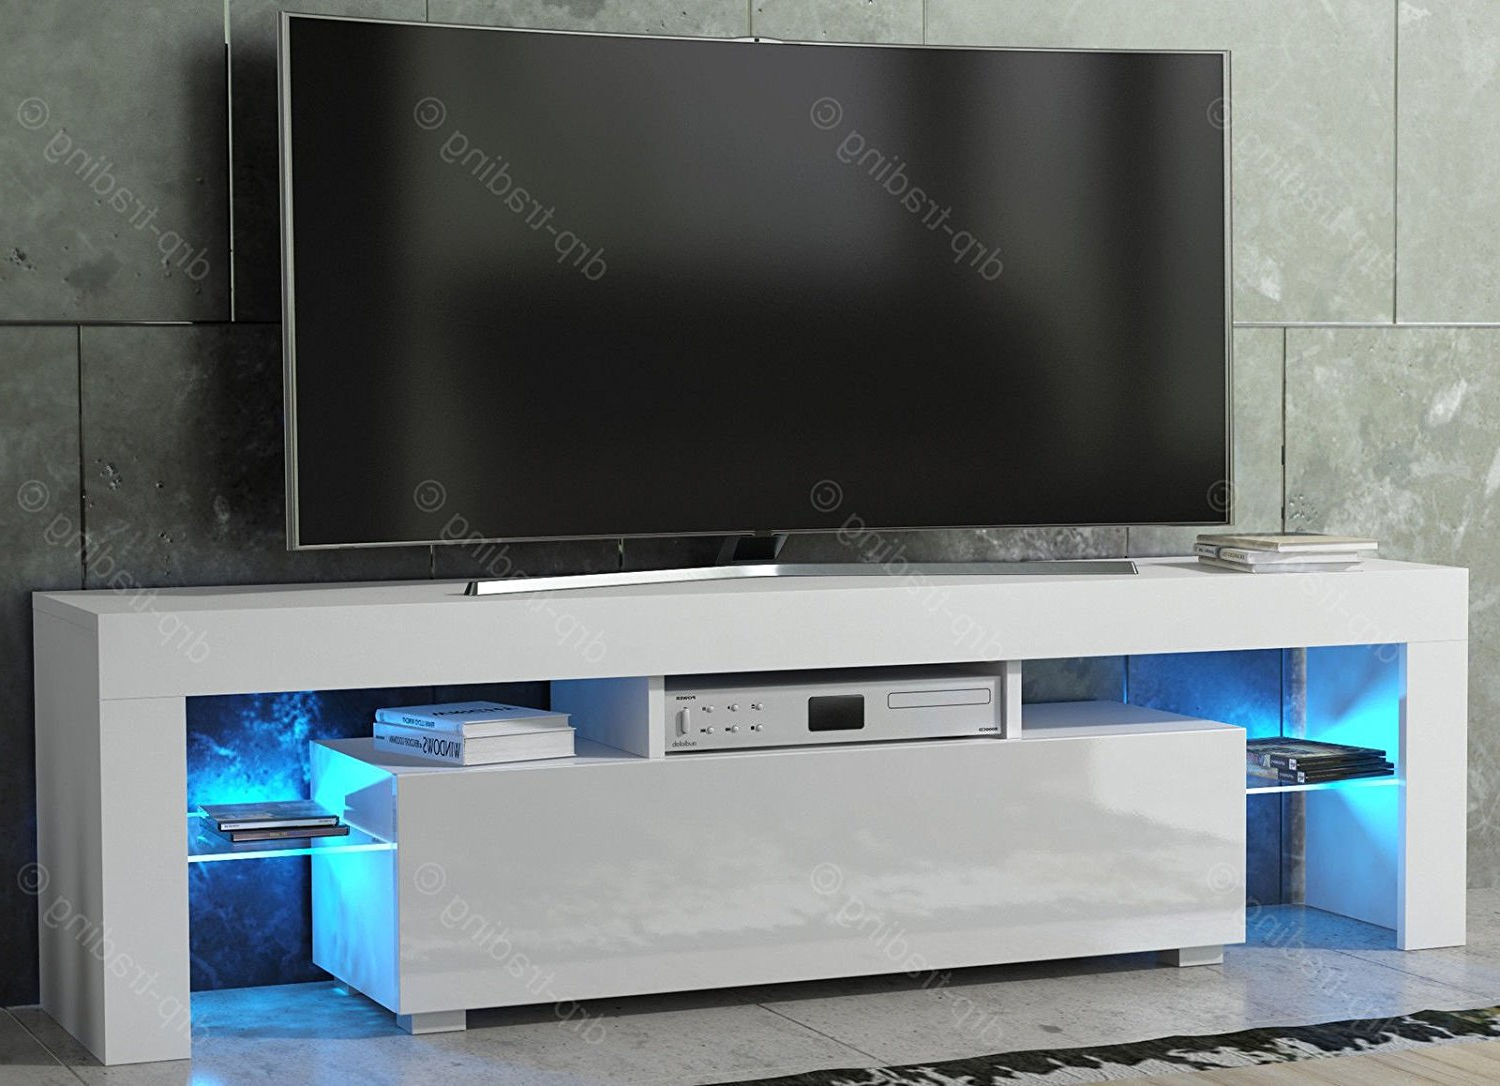 Hot Sale !!! Modern Popular White High Gloss Lcd Mdf Tv Stand – Buy Within Best And Newest White High Gloss Tv Stands (Gallery 8 of 20)